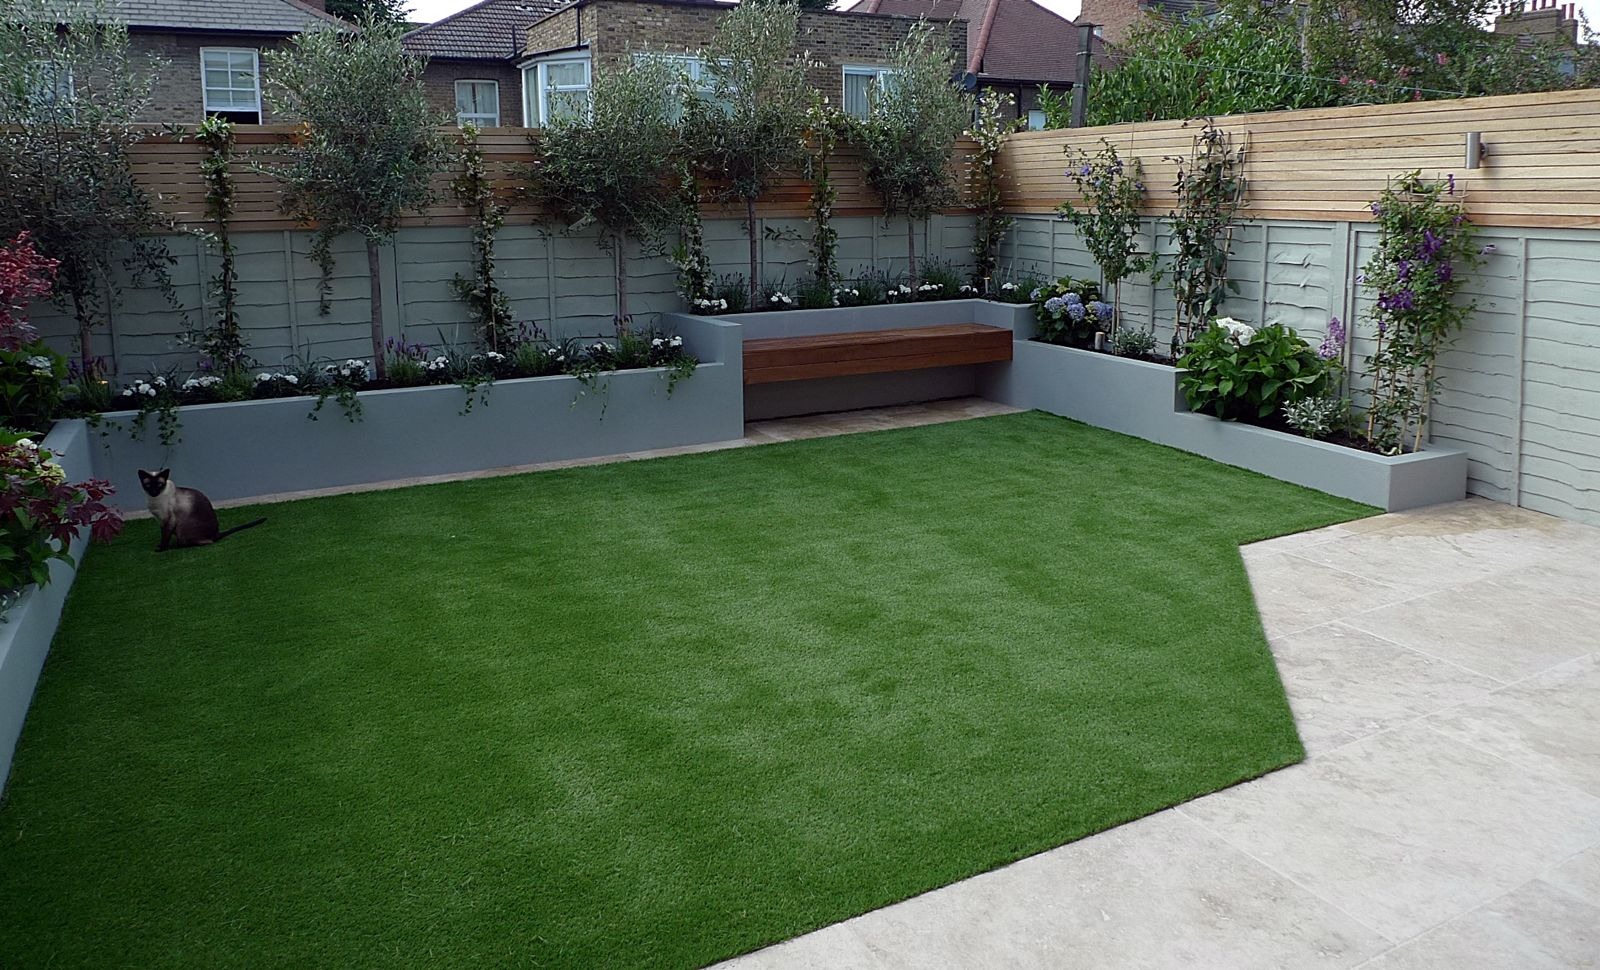 small-garden-design-raised-beds-artificial-grass-travertine-paving